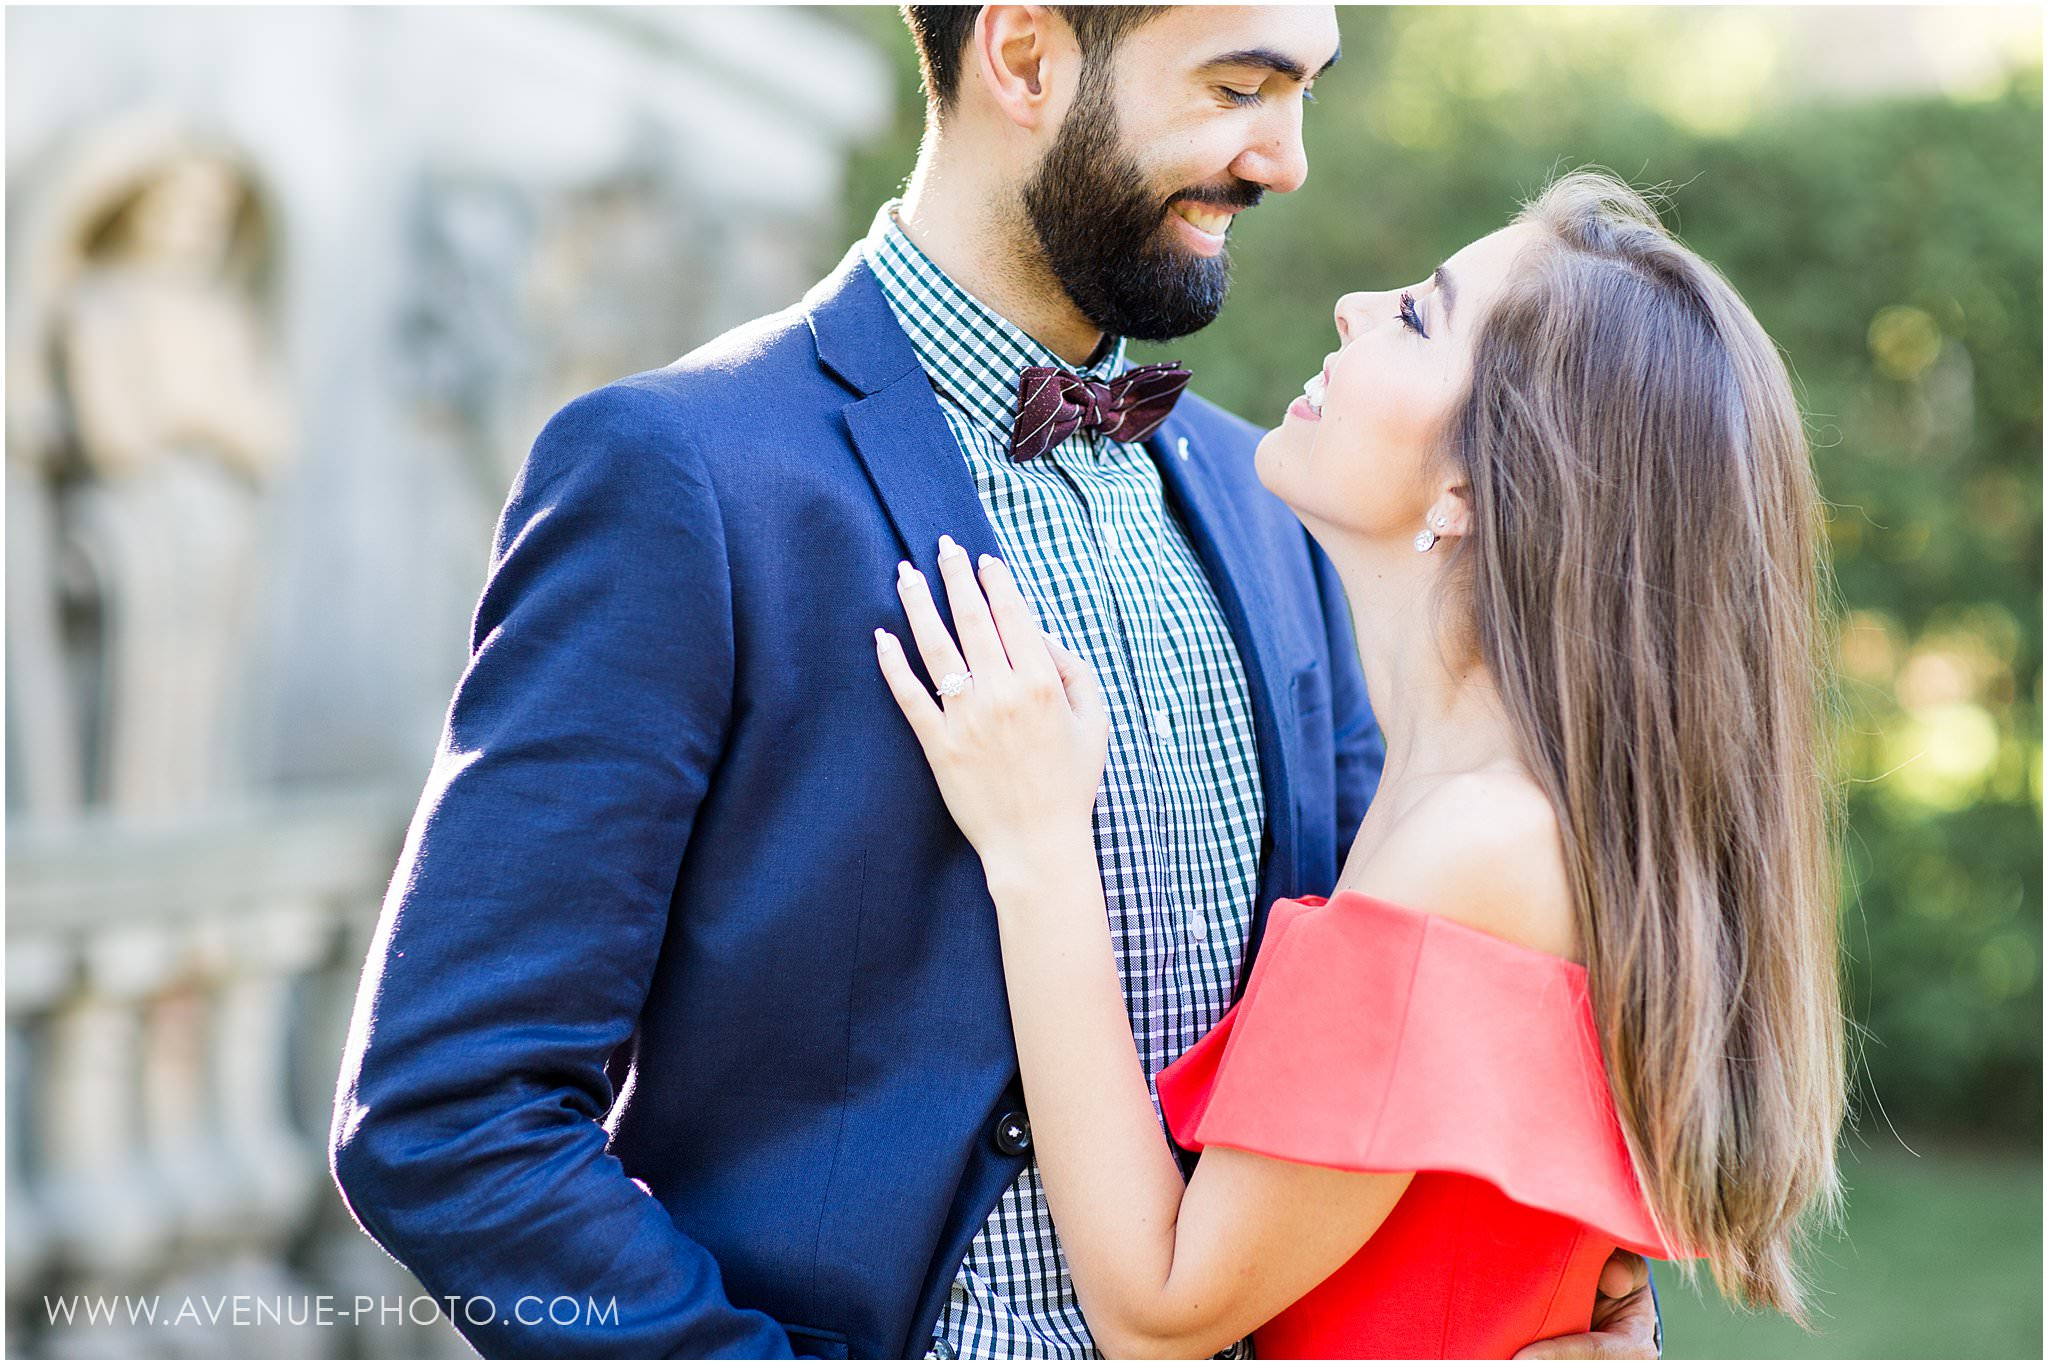 Scarborough Bluffs Engagement Photos, The Guild Inn Estate Engagement Photos, Toronto Wedding Photographer, Avenue Photo